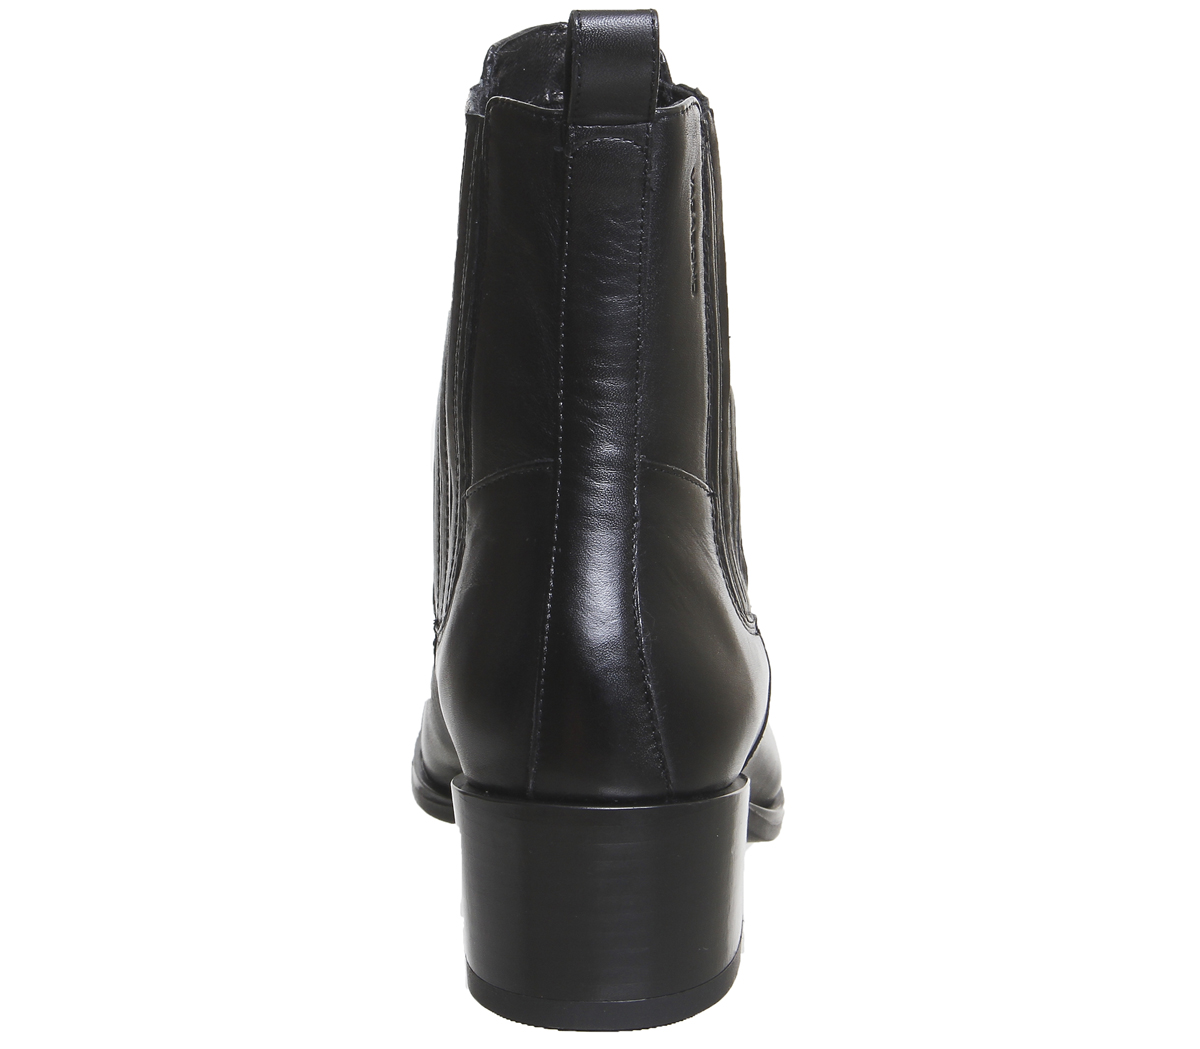 Womens-Vagabond-Marja-Chelsea-Boots-Black-Leather-Boots thumbnail 9